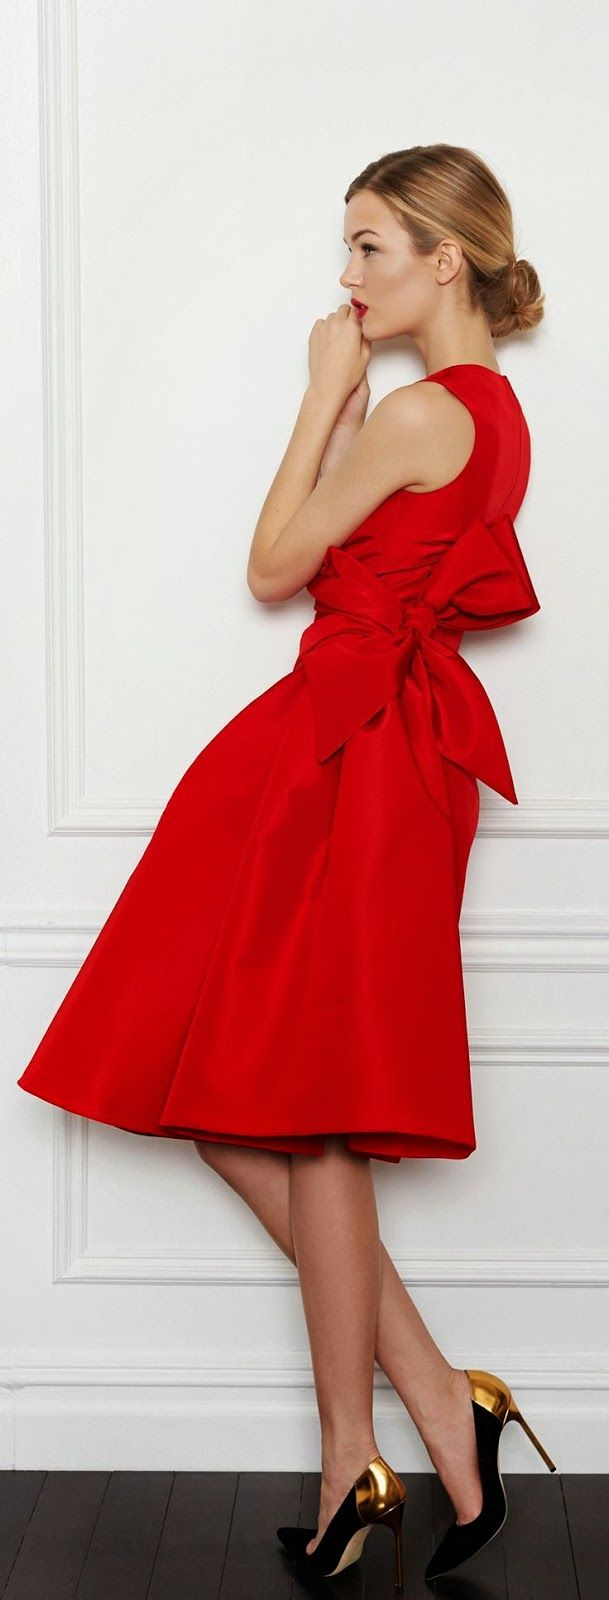 Lady in red, j'adore